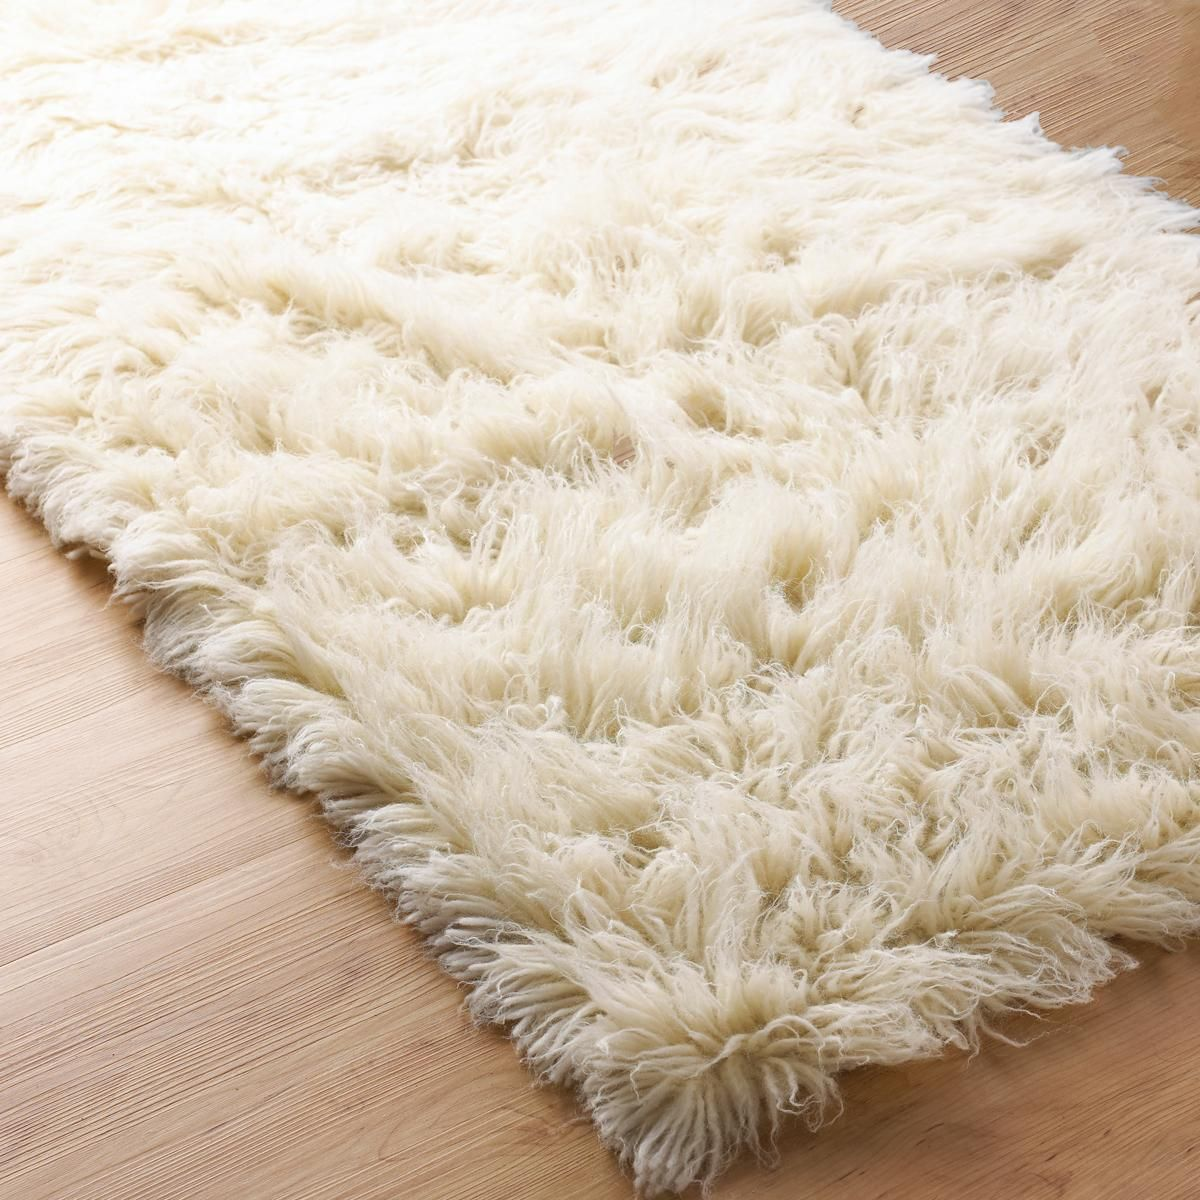 How to clean a flokati rug - Superior Flokati Sheepskin Rug We Searched To Find The Best Flokati Rug Available Considering The